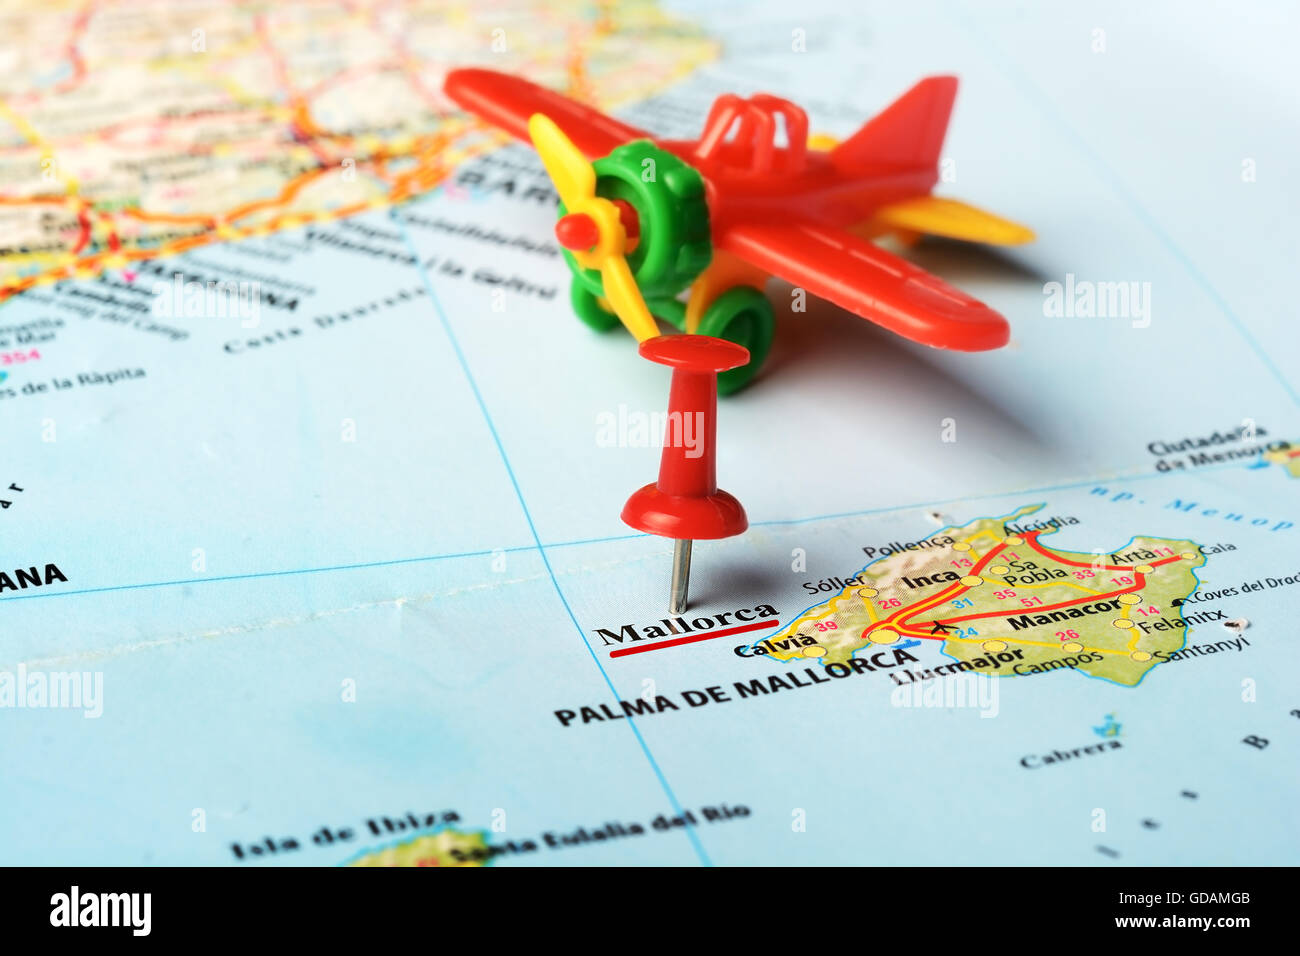 Close Up Of Majorca Island Spain Map Pin And Airplane Toy Stock